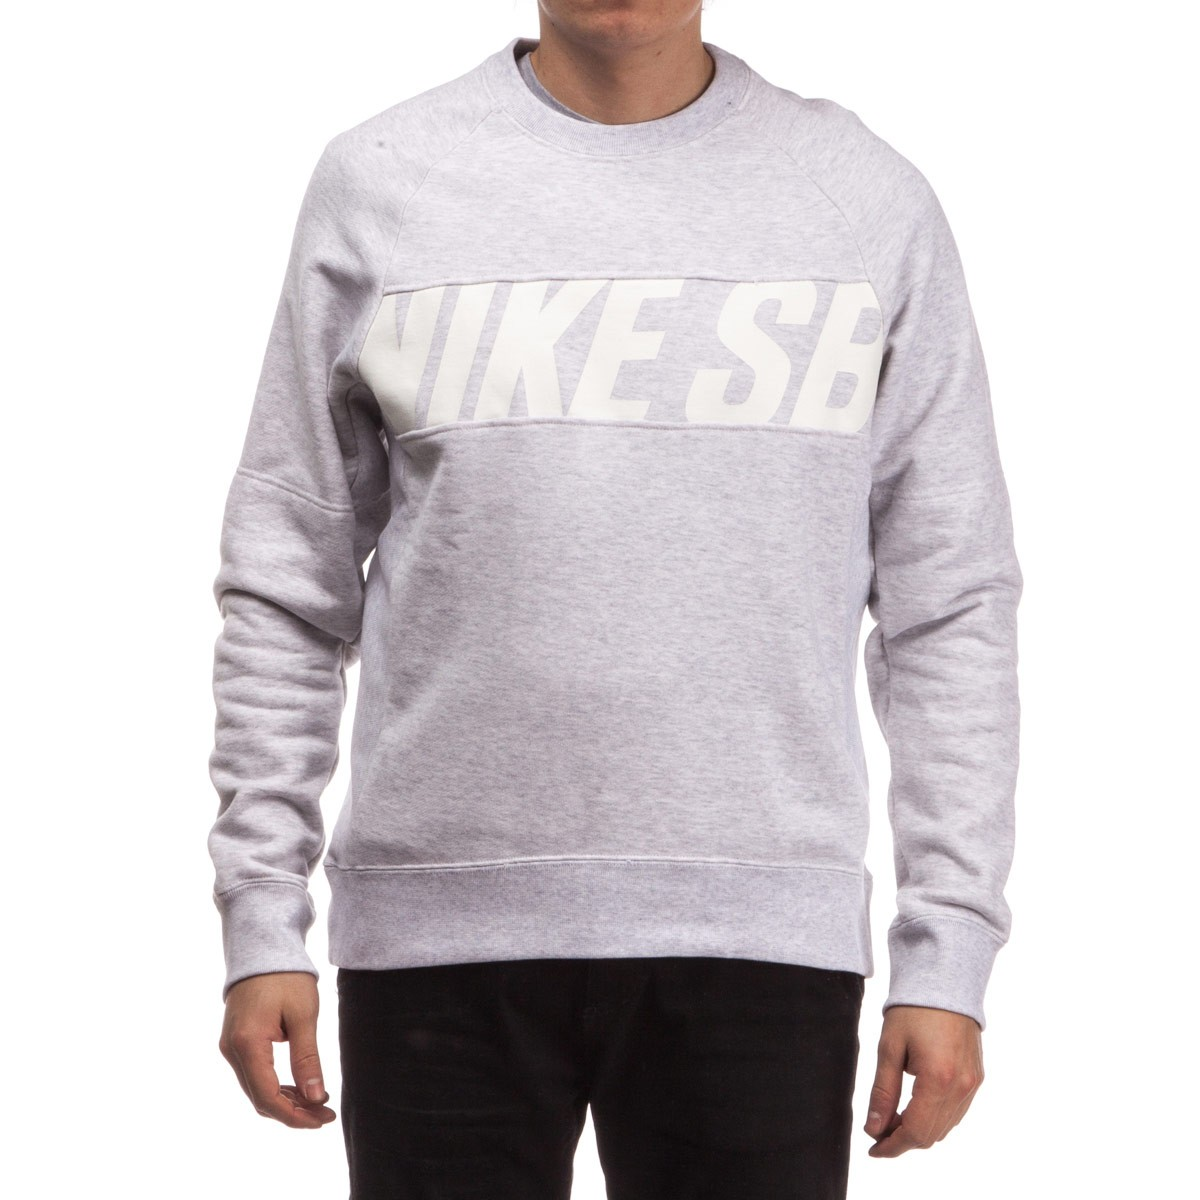 Heatherwhite Sb Nike Birch Sweatshirt Crew Everett Motion FAAOYfq